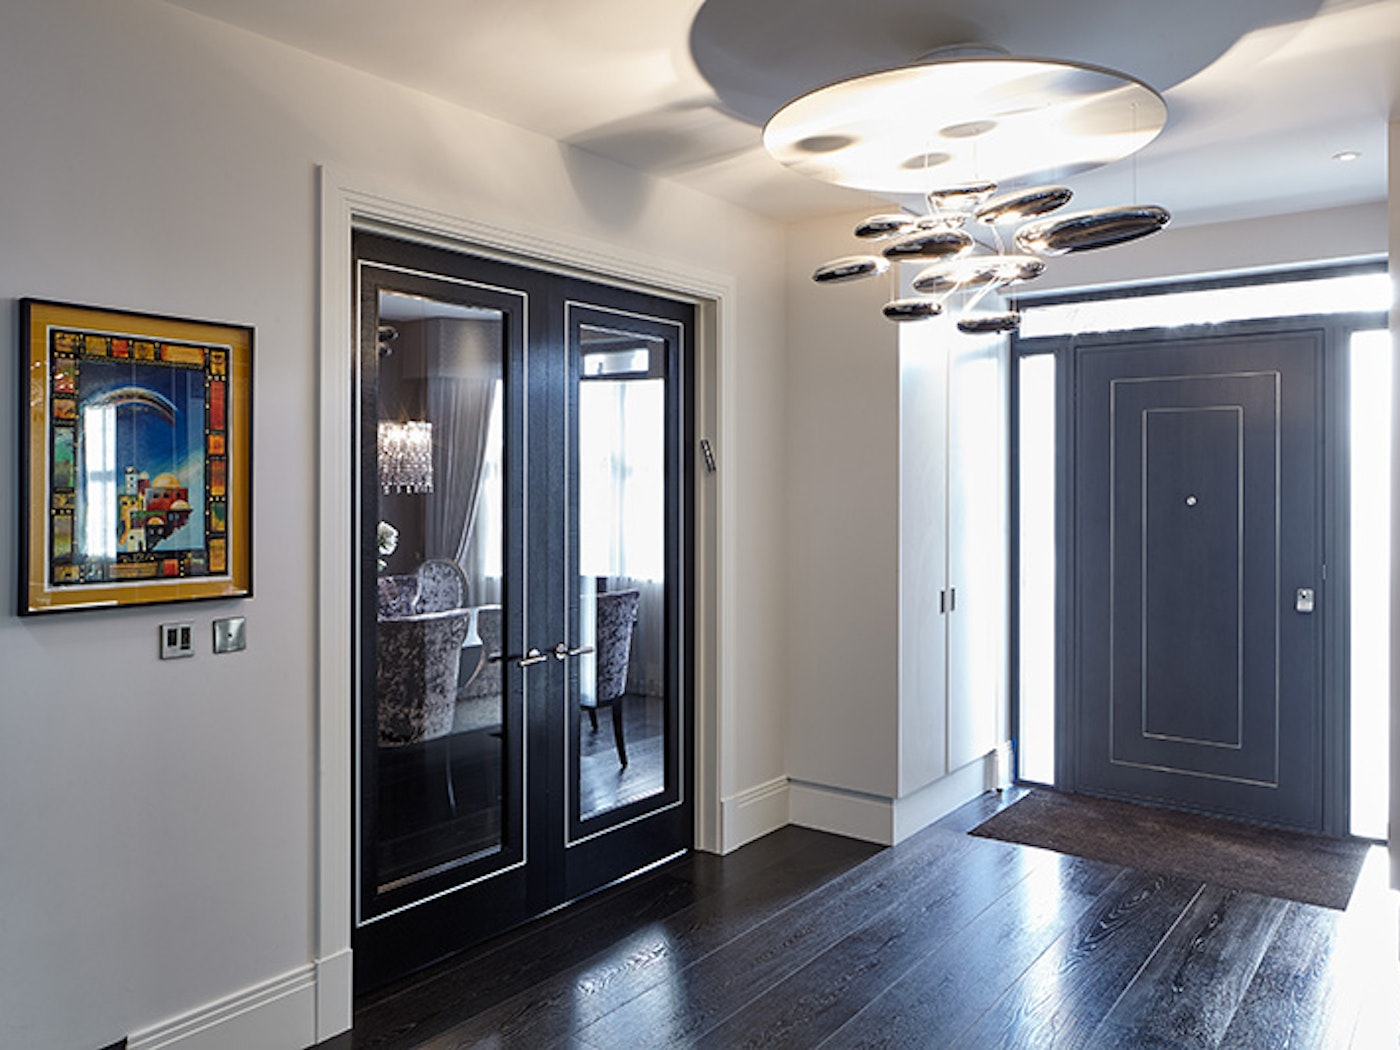 using a  simliar design on the internal doors to match the front doors is perfect here